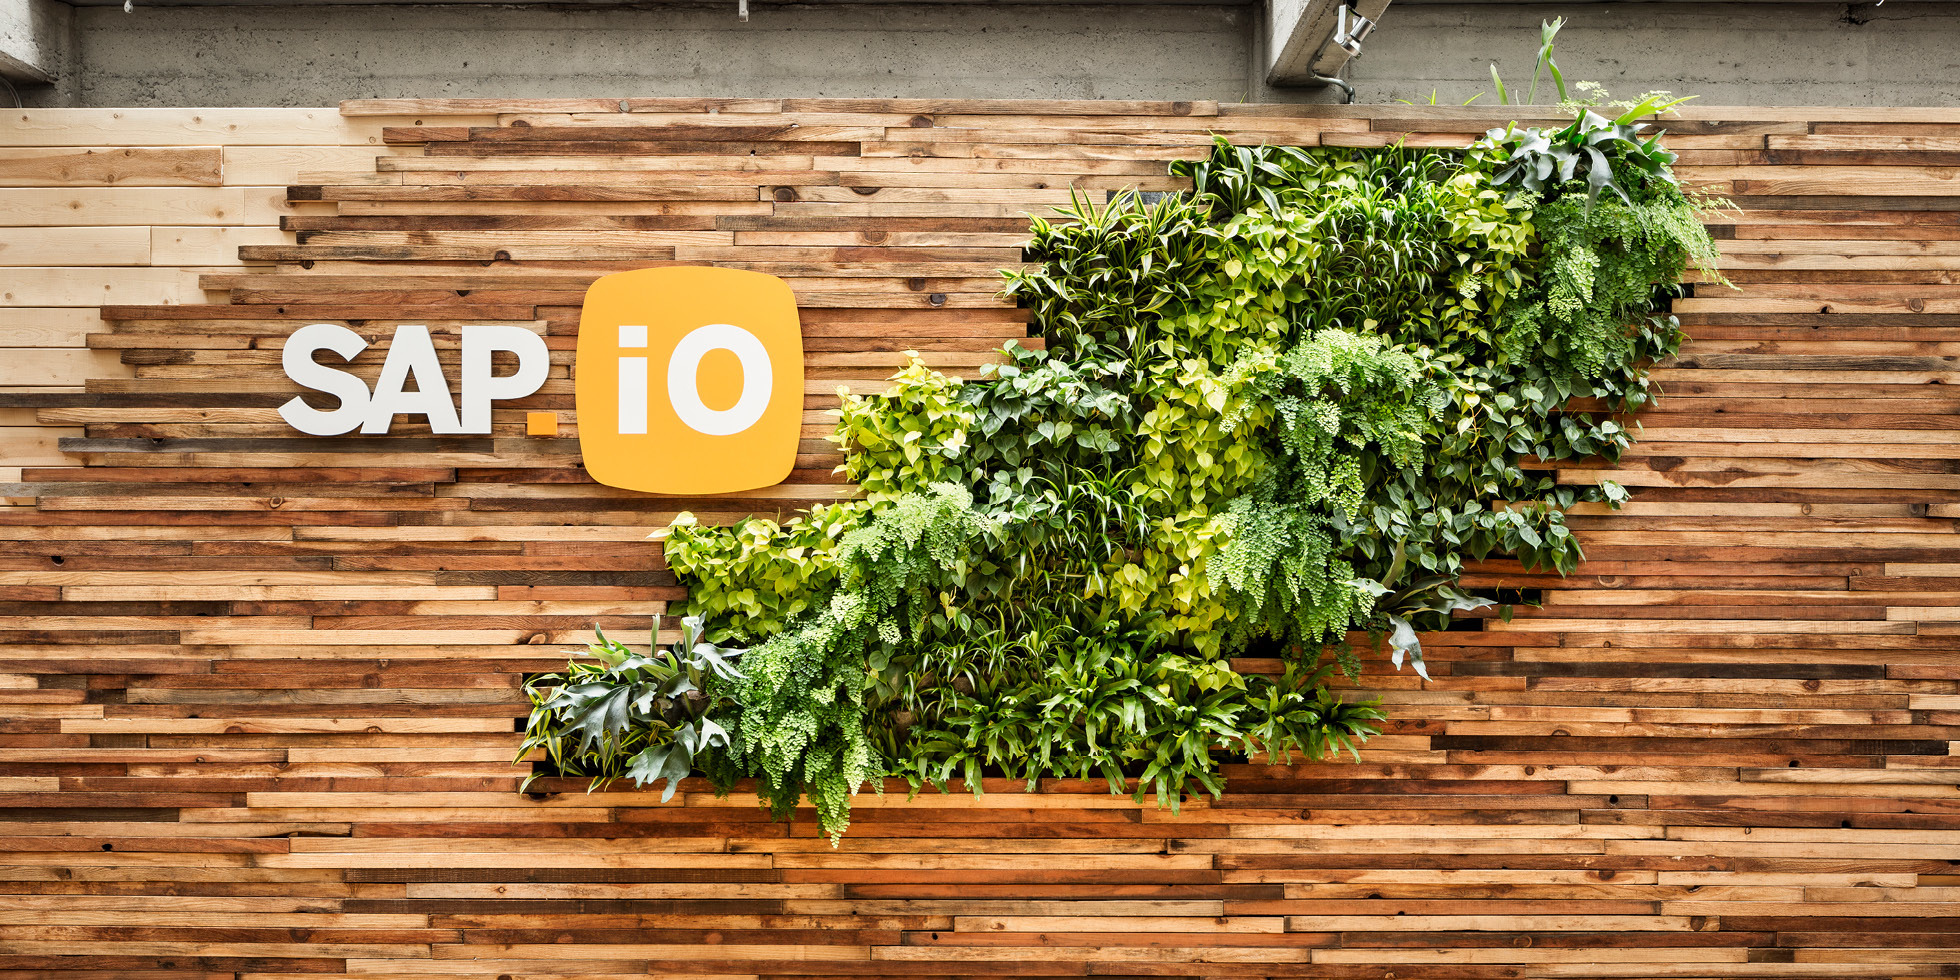 SAP.iO Living Wall by Habitat Horticulture - View 1